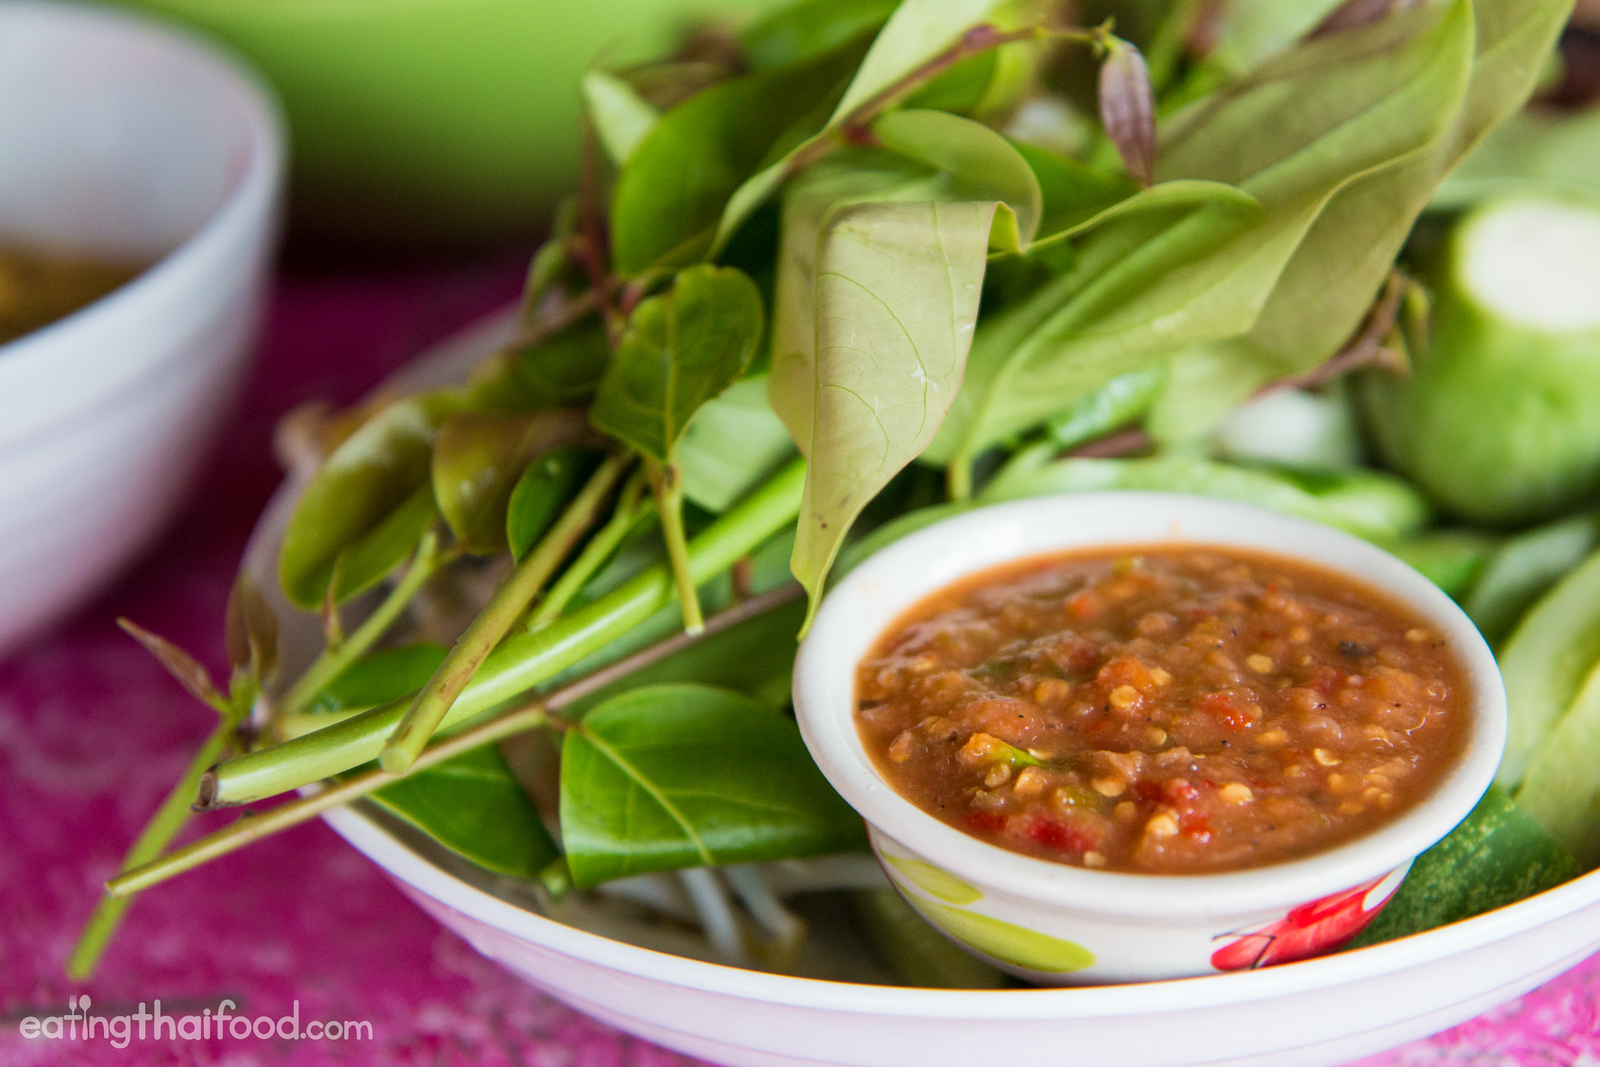 Thai chili dip and vegetables